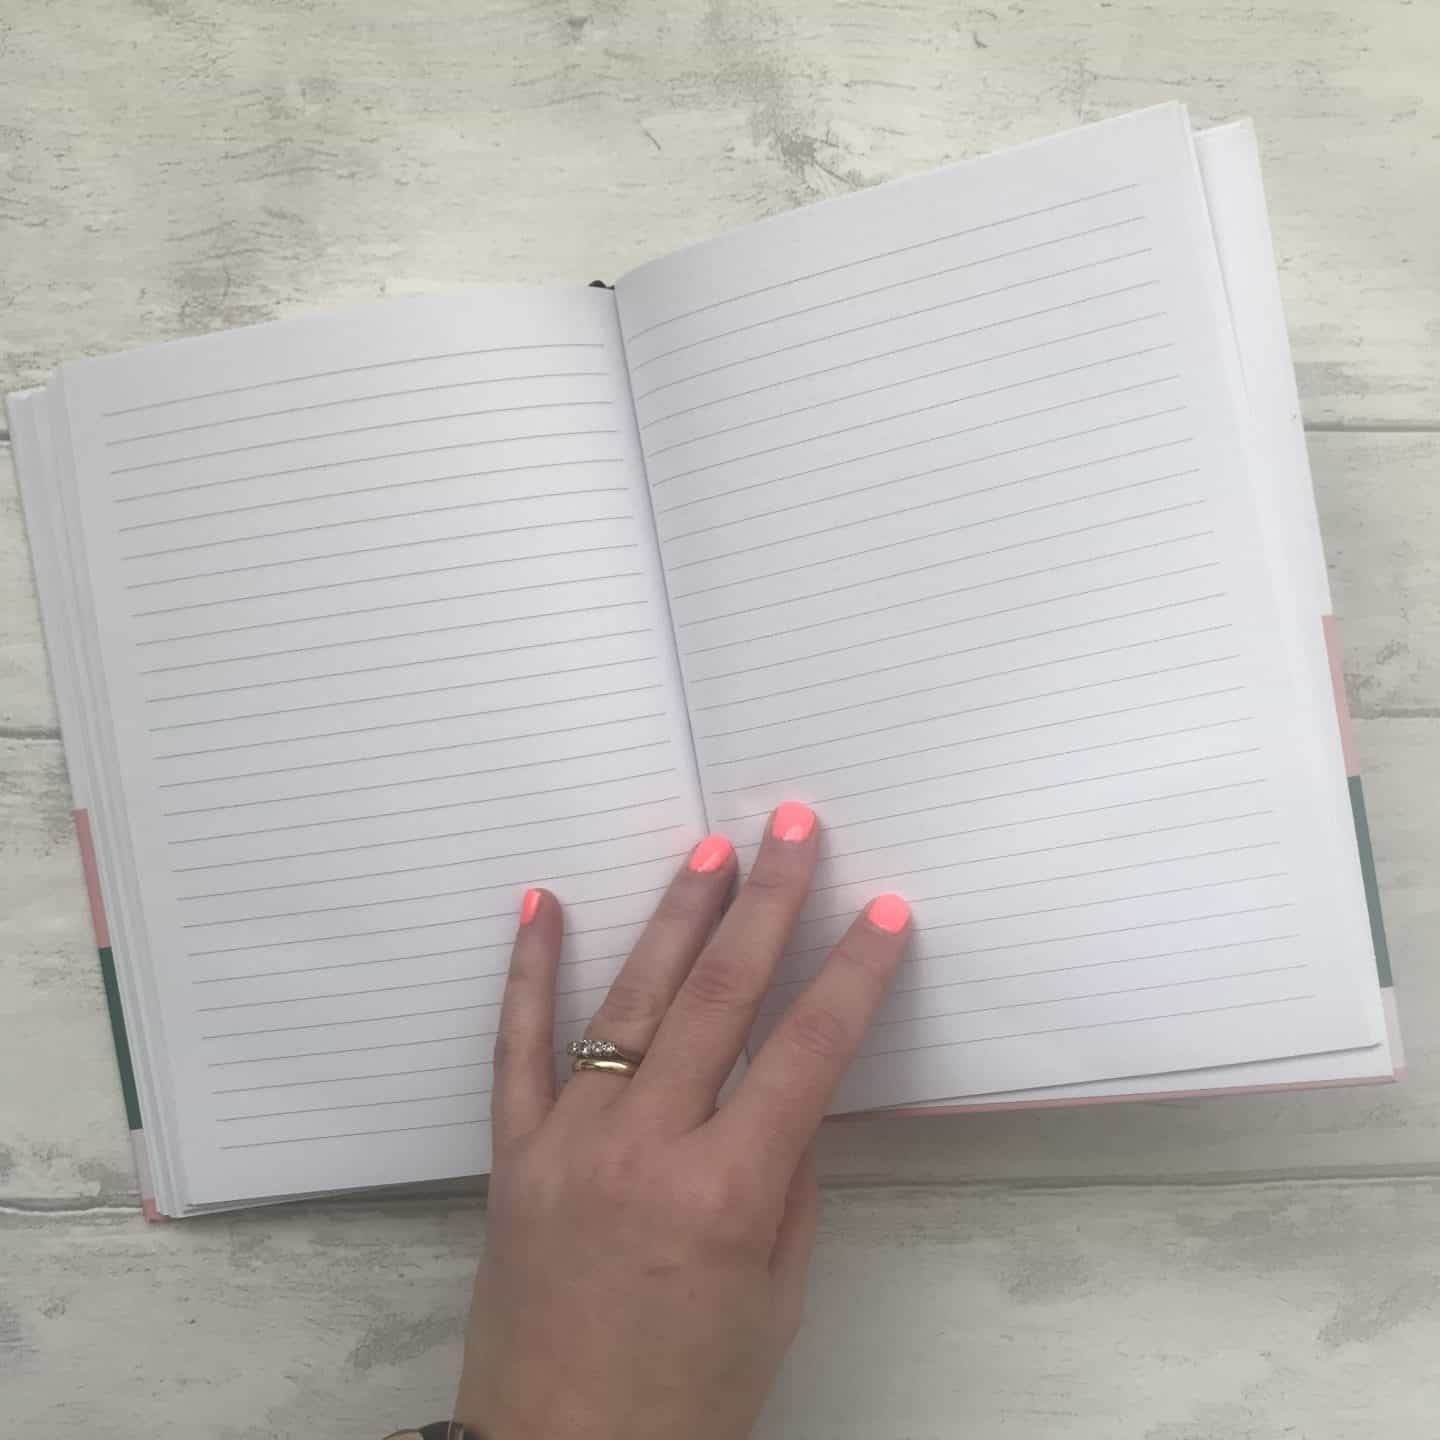 Papier diary lined pages